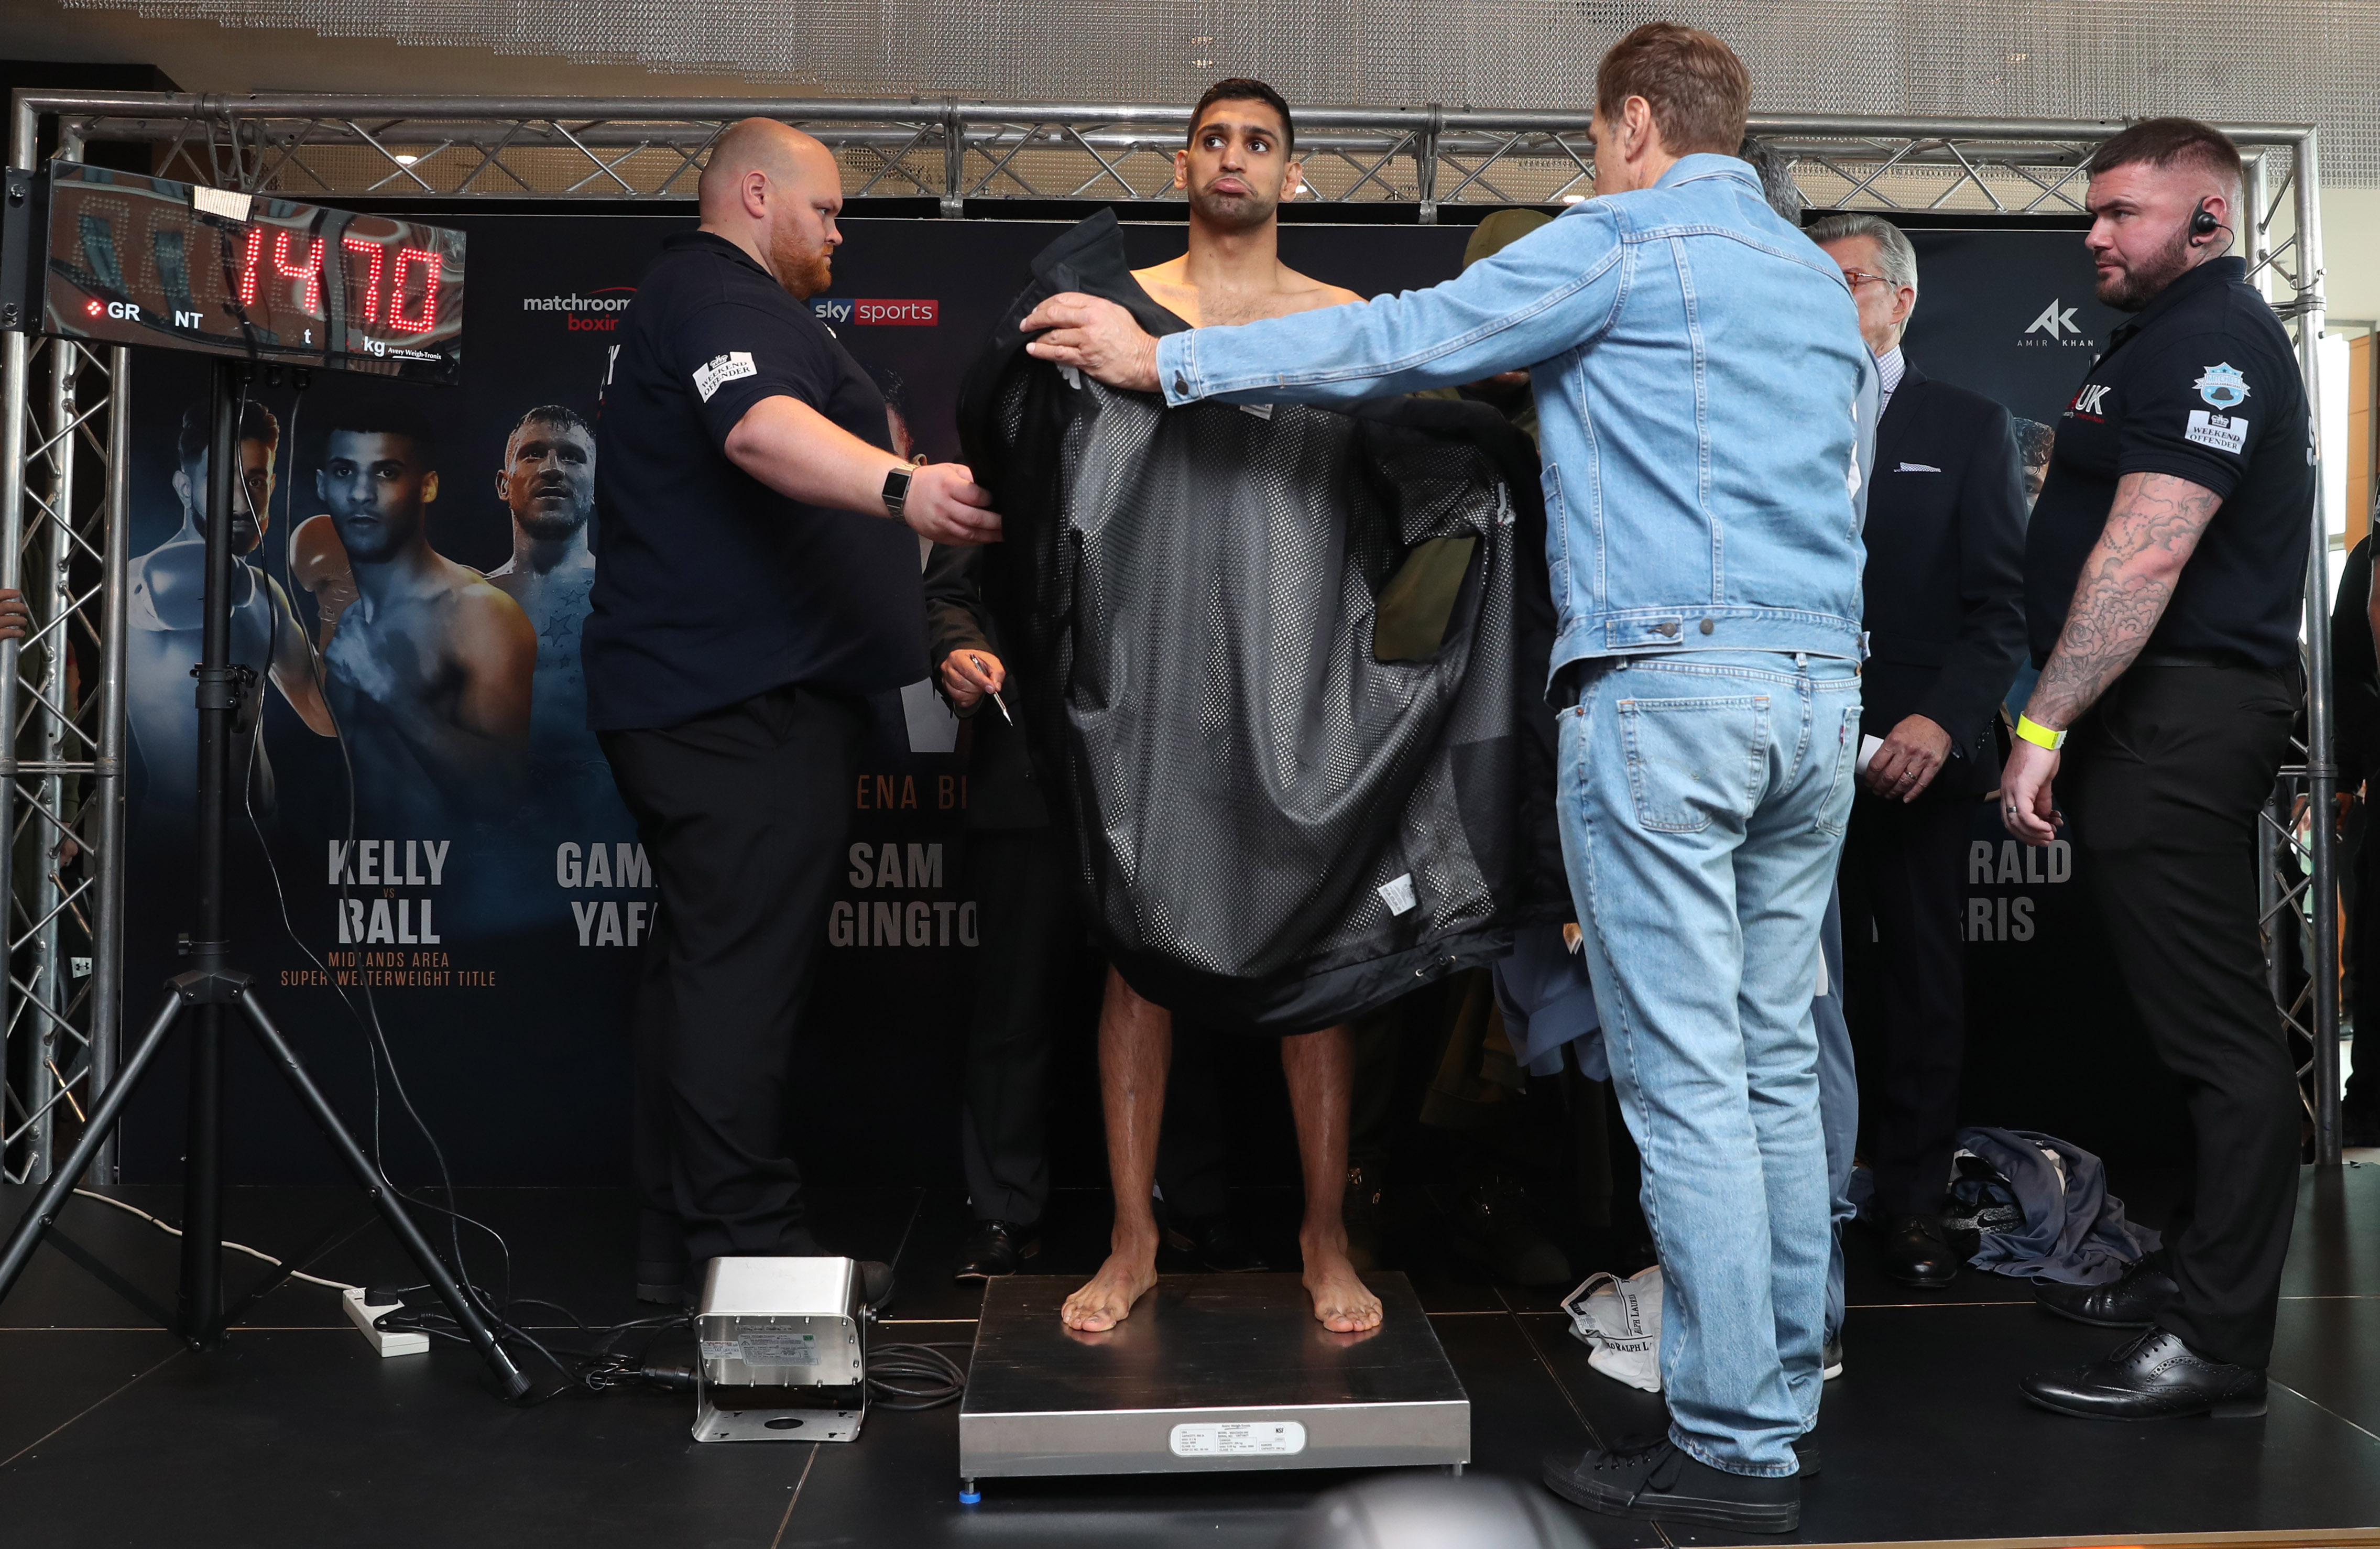 Amir Khan weighs in with the help of a coat to make welterweight for Samuel Vargas clash